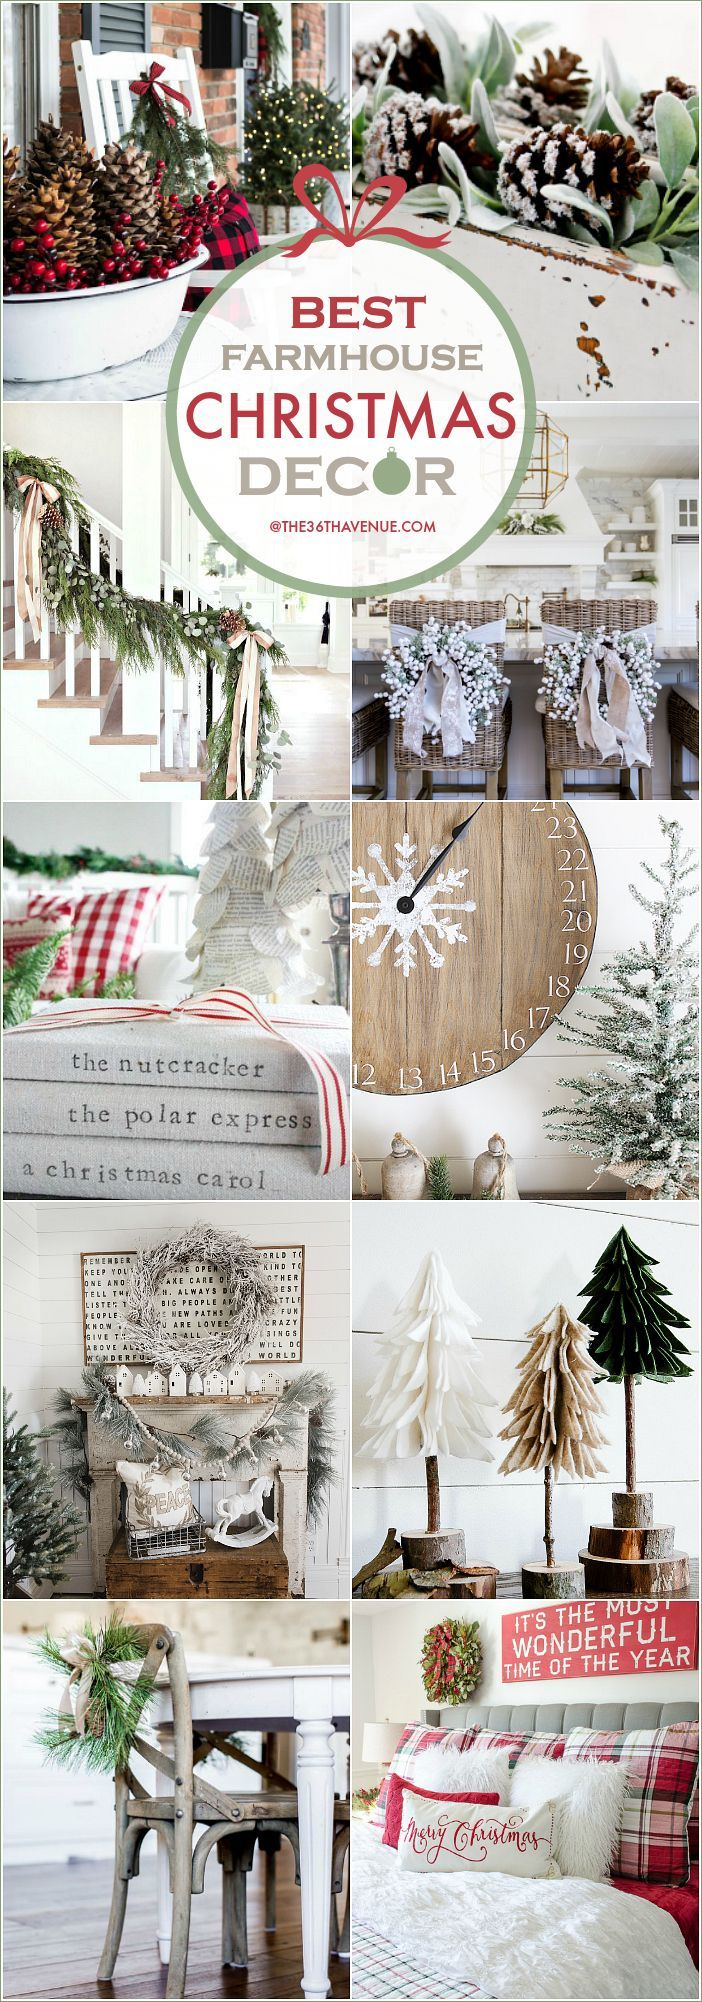 1467 best Christmas Home images on Pinterest | Christmas crafts ...